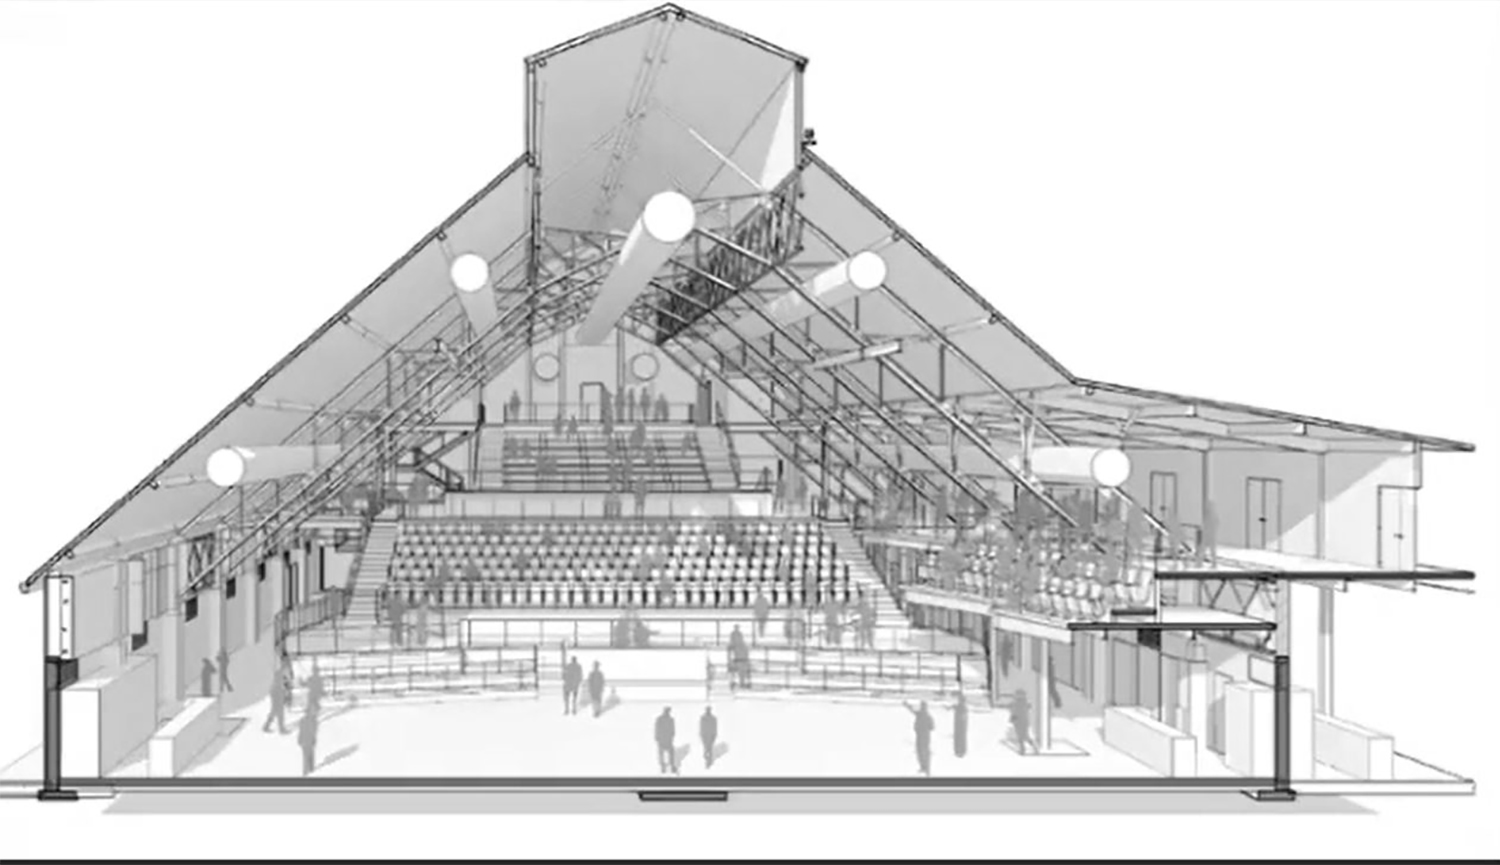 Northern-Facing Shed Building Section. Drawing by Lamar Johnson Collaborative